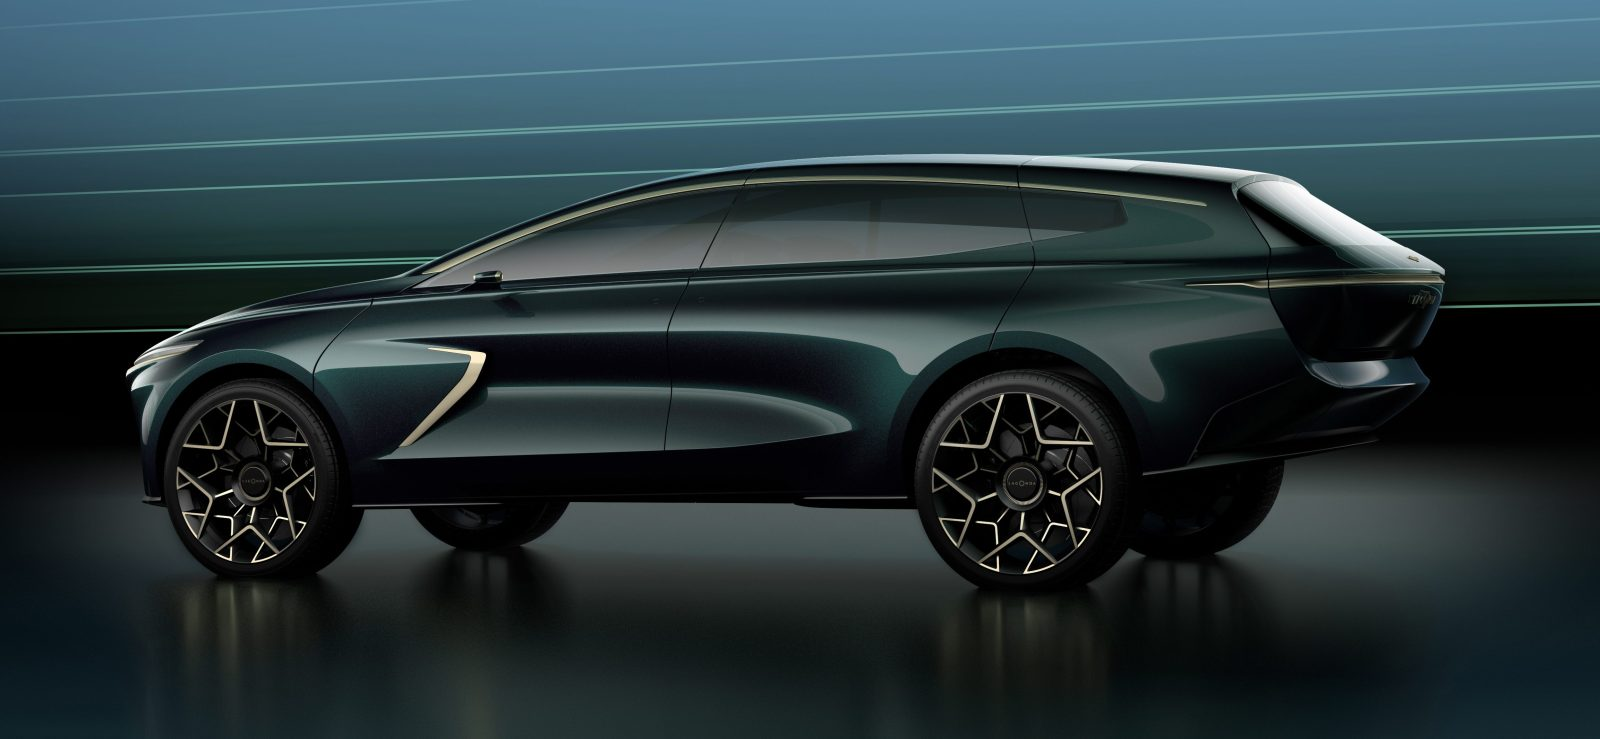 aston martin reveals lagonda all-terrain electric suv concept - electrek